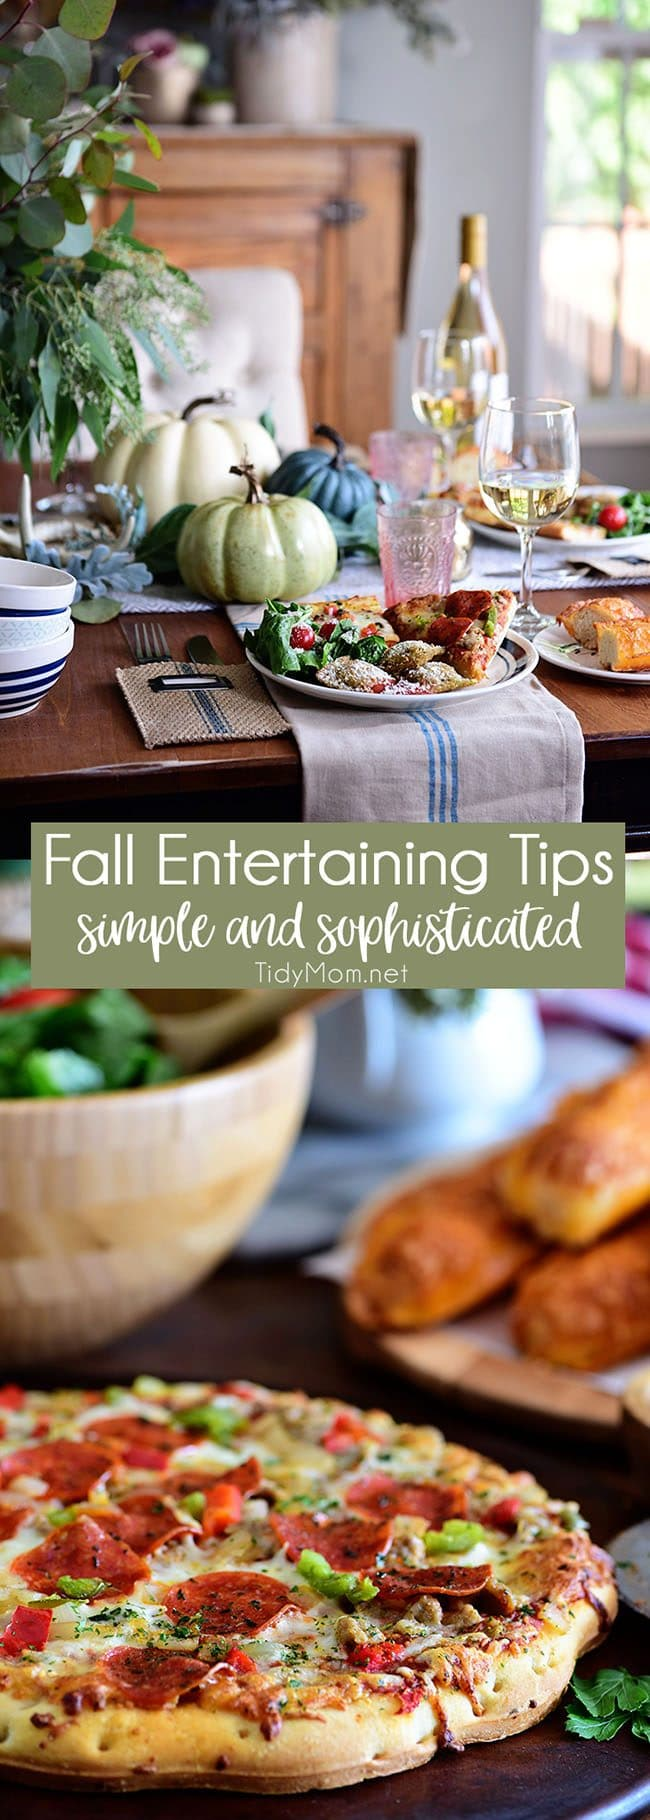 Fall Entertaining can be simple and still be elegant. There's nothing like the magic of a small cozy fall dinner party—good company, a simple but radiant table,  delicious stress-free food and everyone feels relaxed Get all the fall entertaining tips and ideas at TidyMom.net